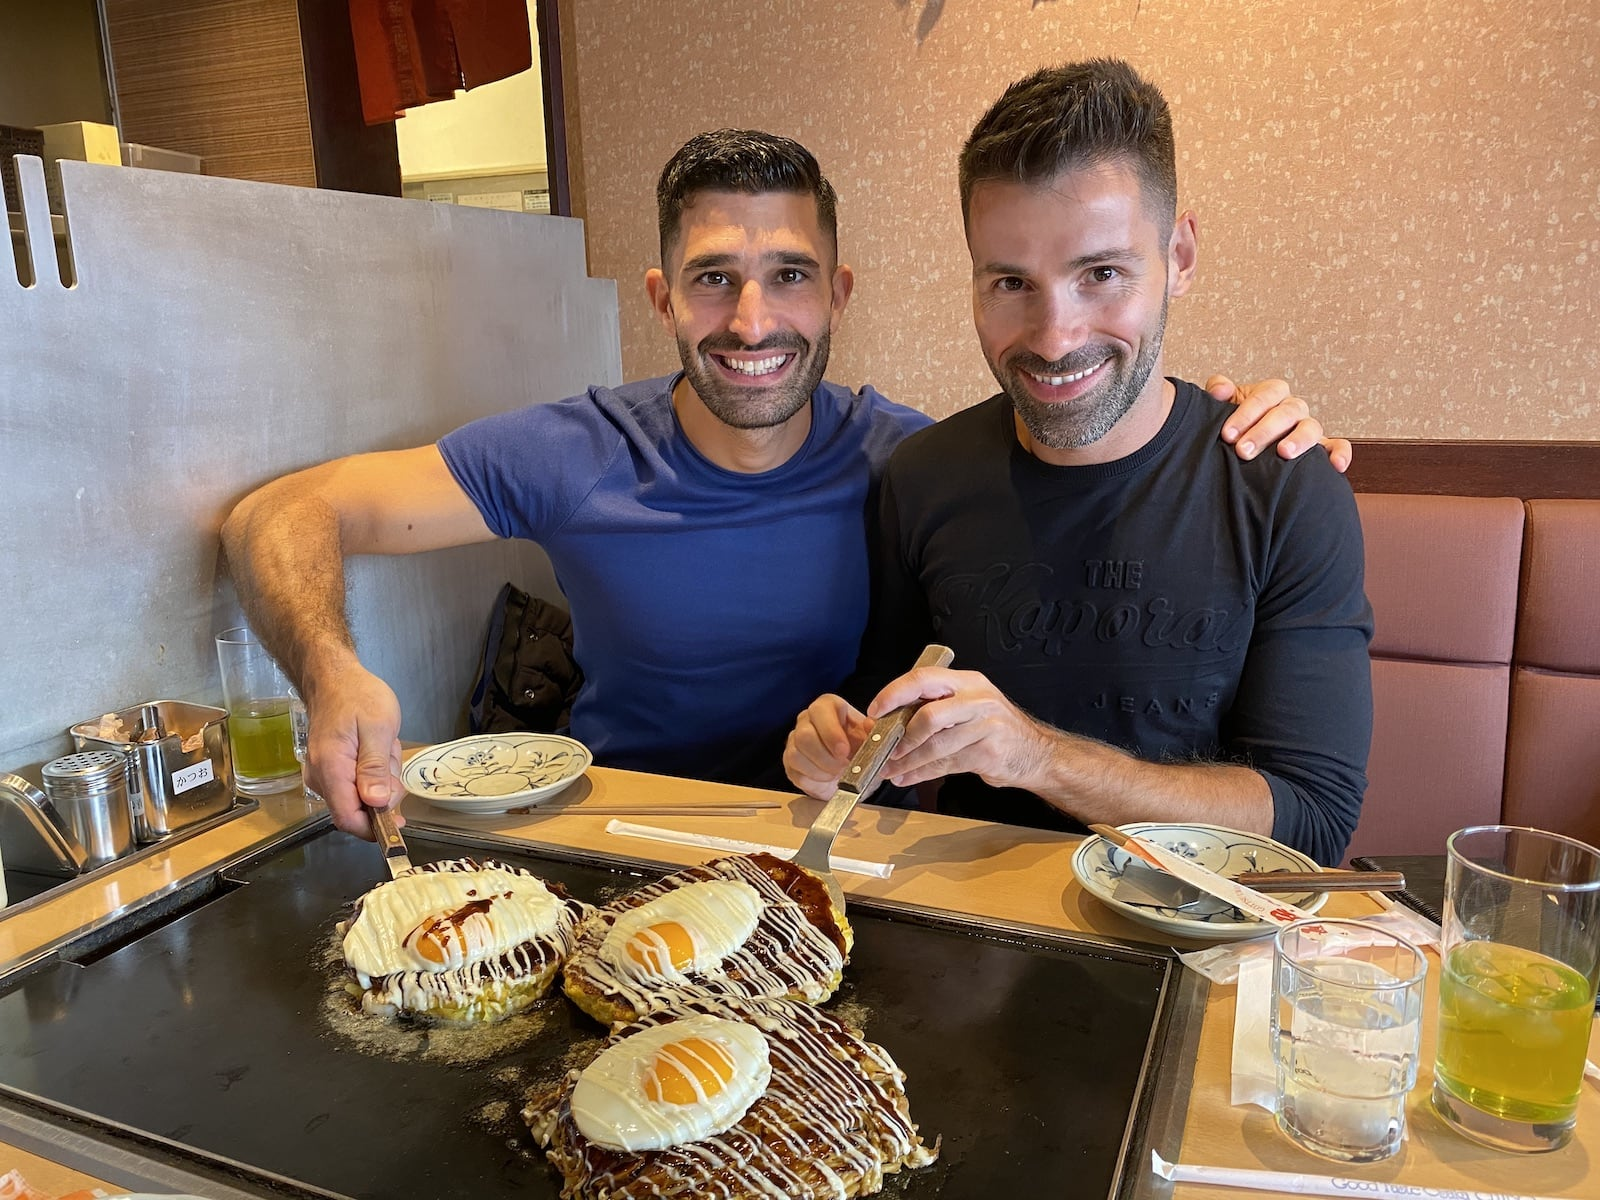 Two gay men enjoying a fried Japanese pancake.